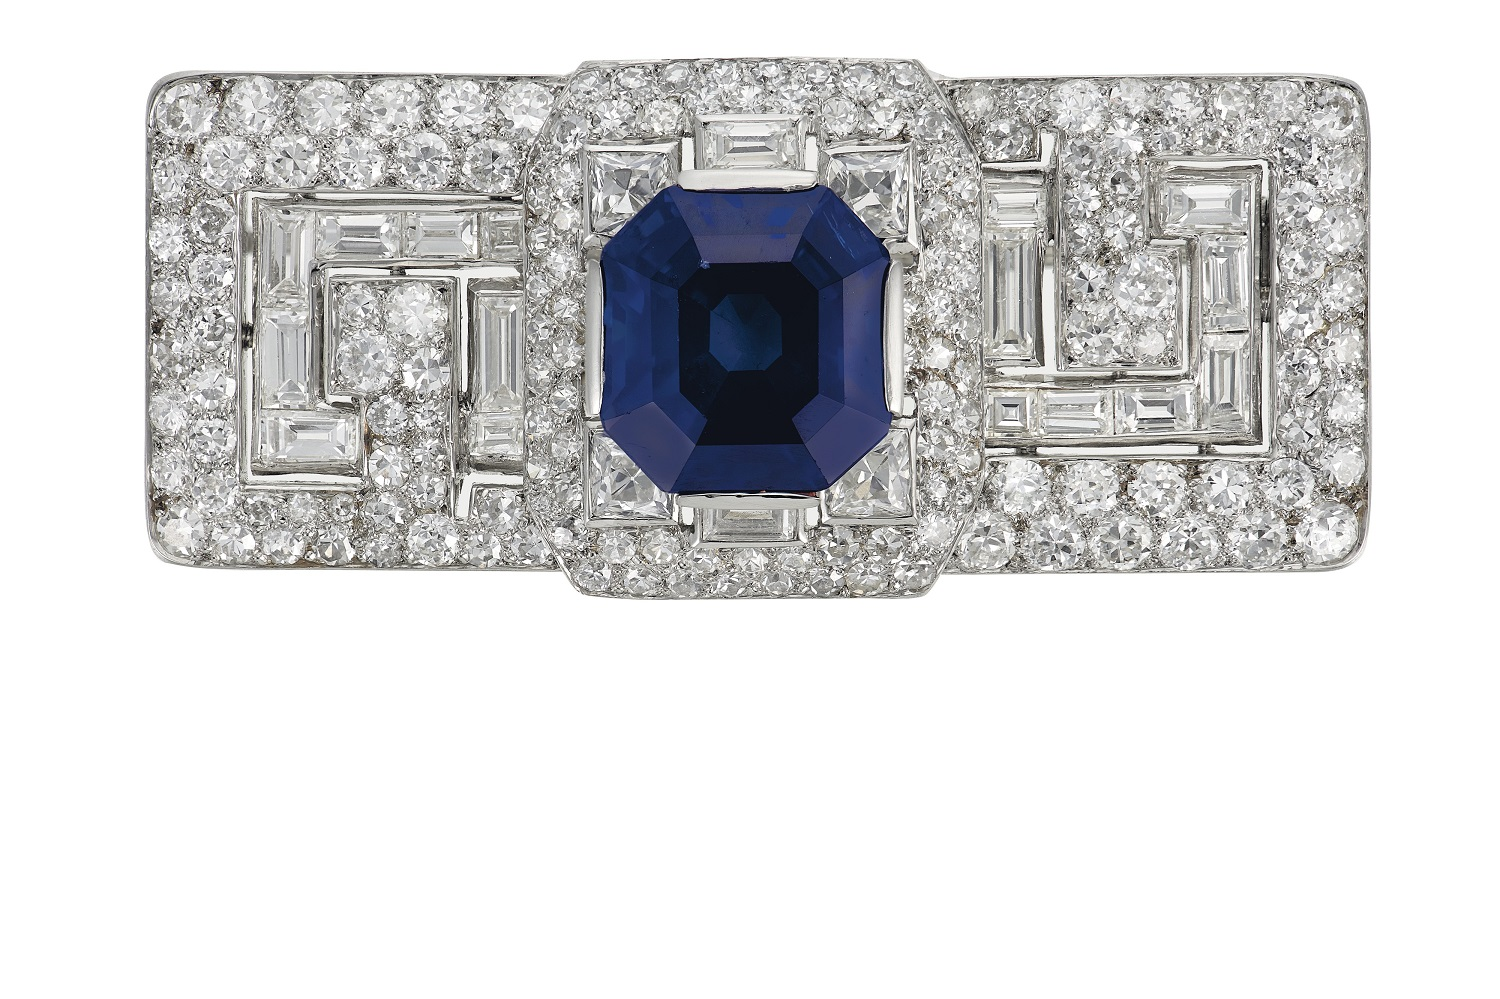 Christie's Magnificent Jewels Sale To Take Place On 8 December